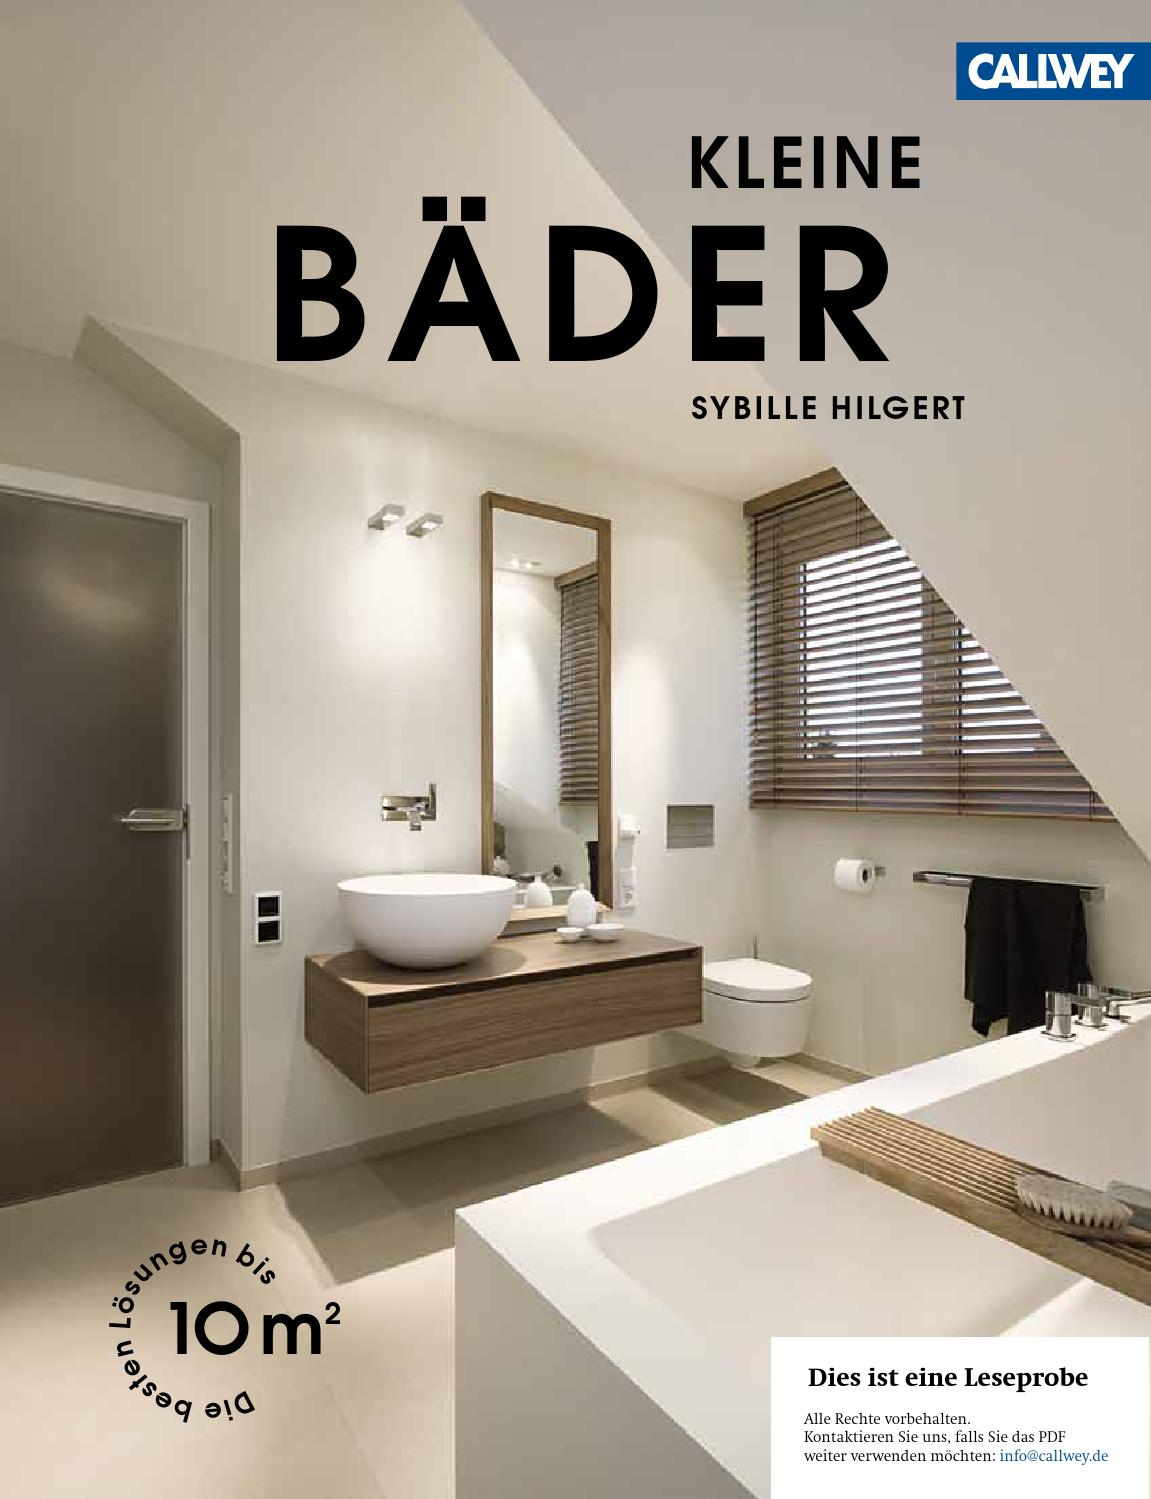 issuu hilgert kleine baeder issuu by georg d w callwey gmbh co kg. Black Bedroom Furniture Sets. Home Design Ideas